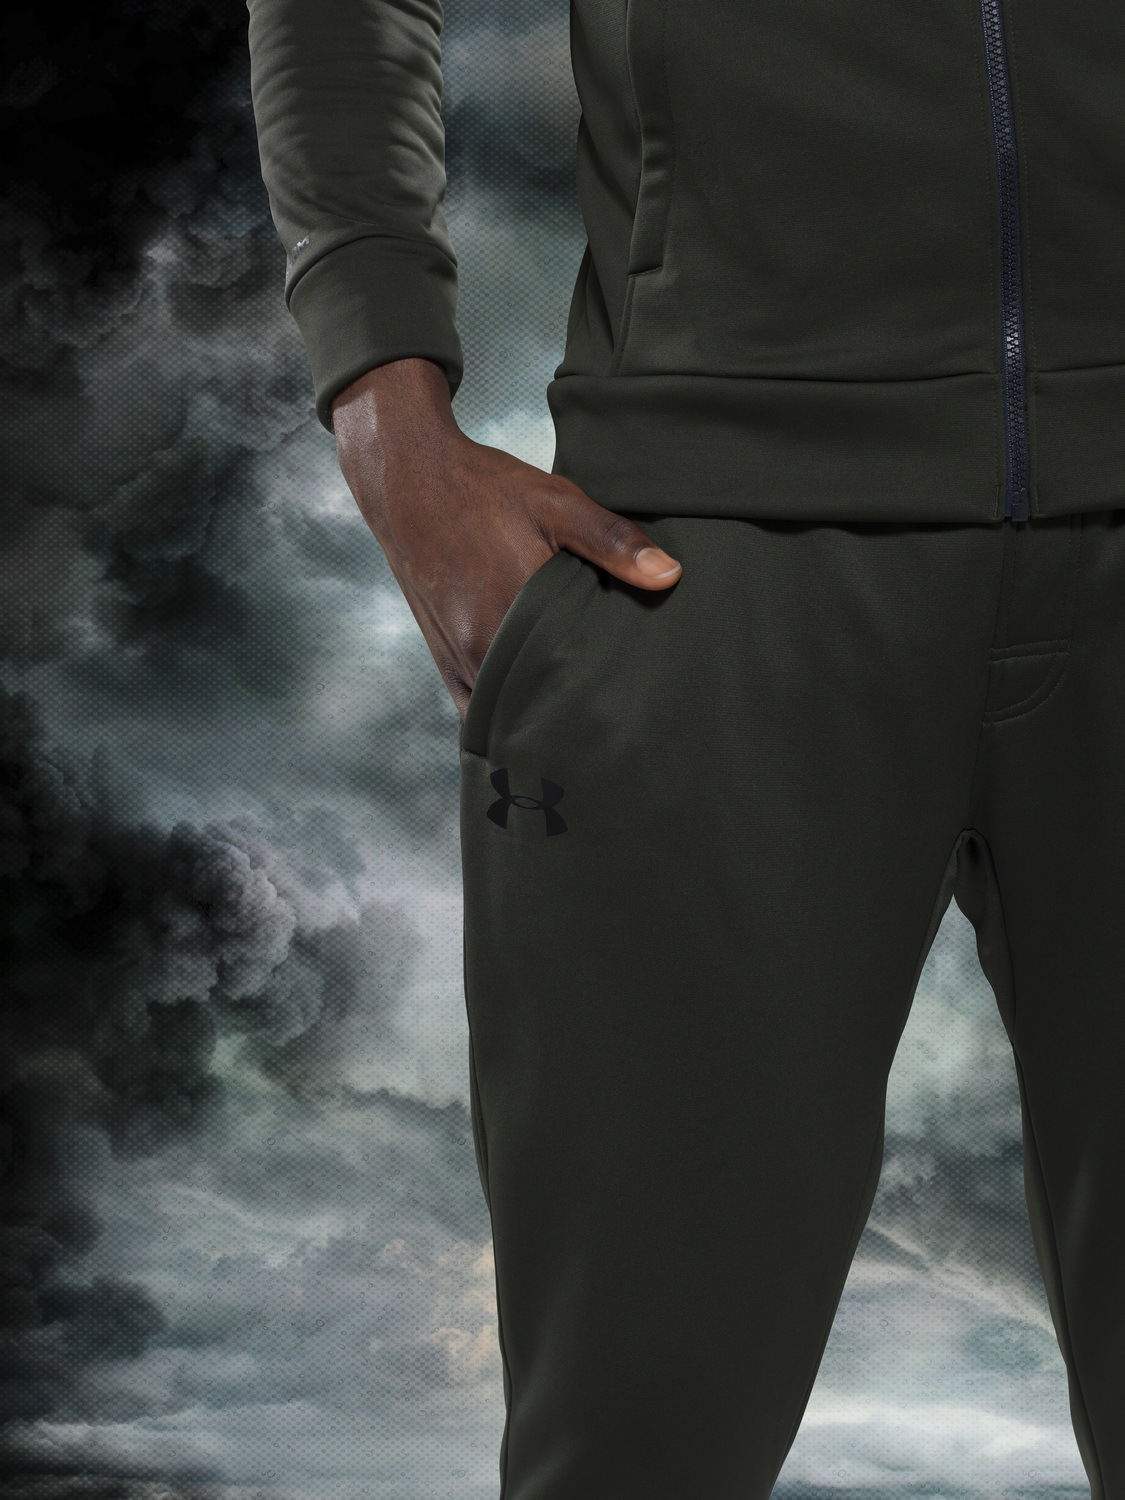 olive green under armour tracksuit on a stormy background